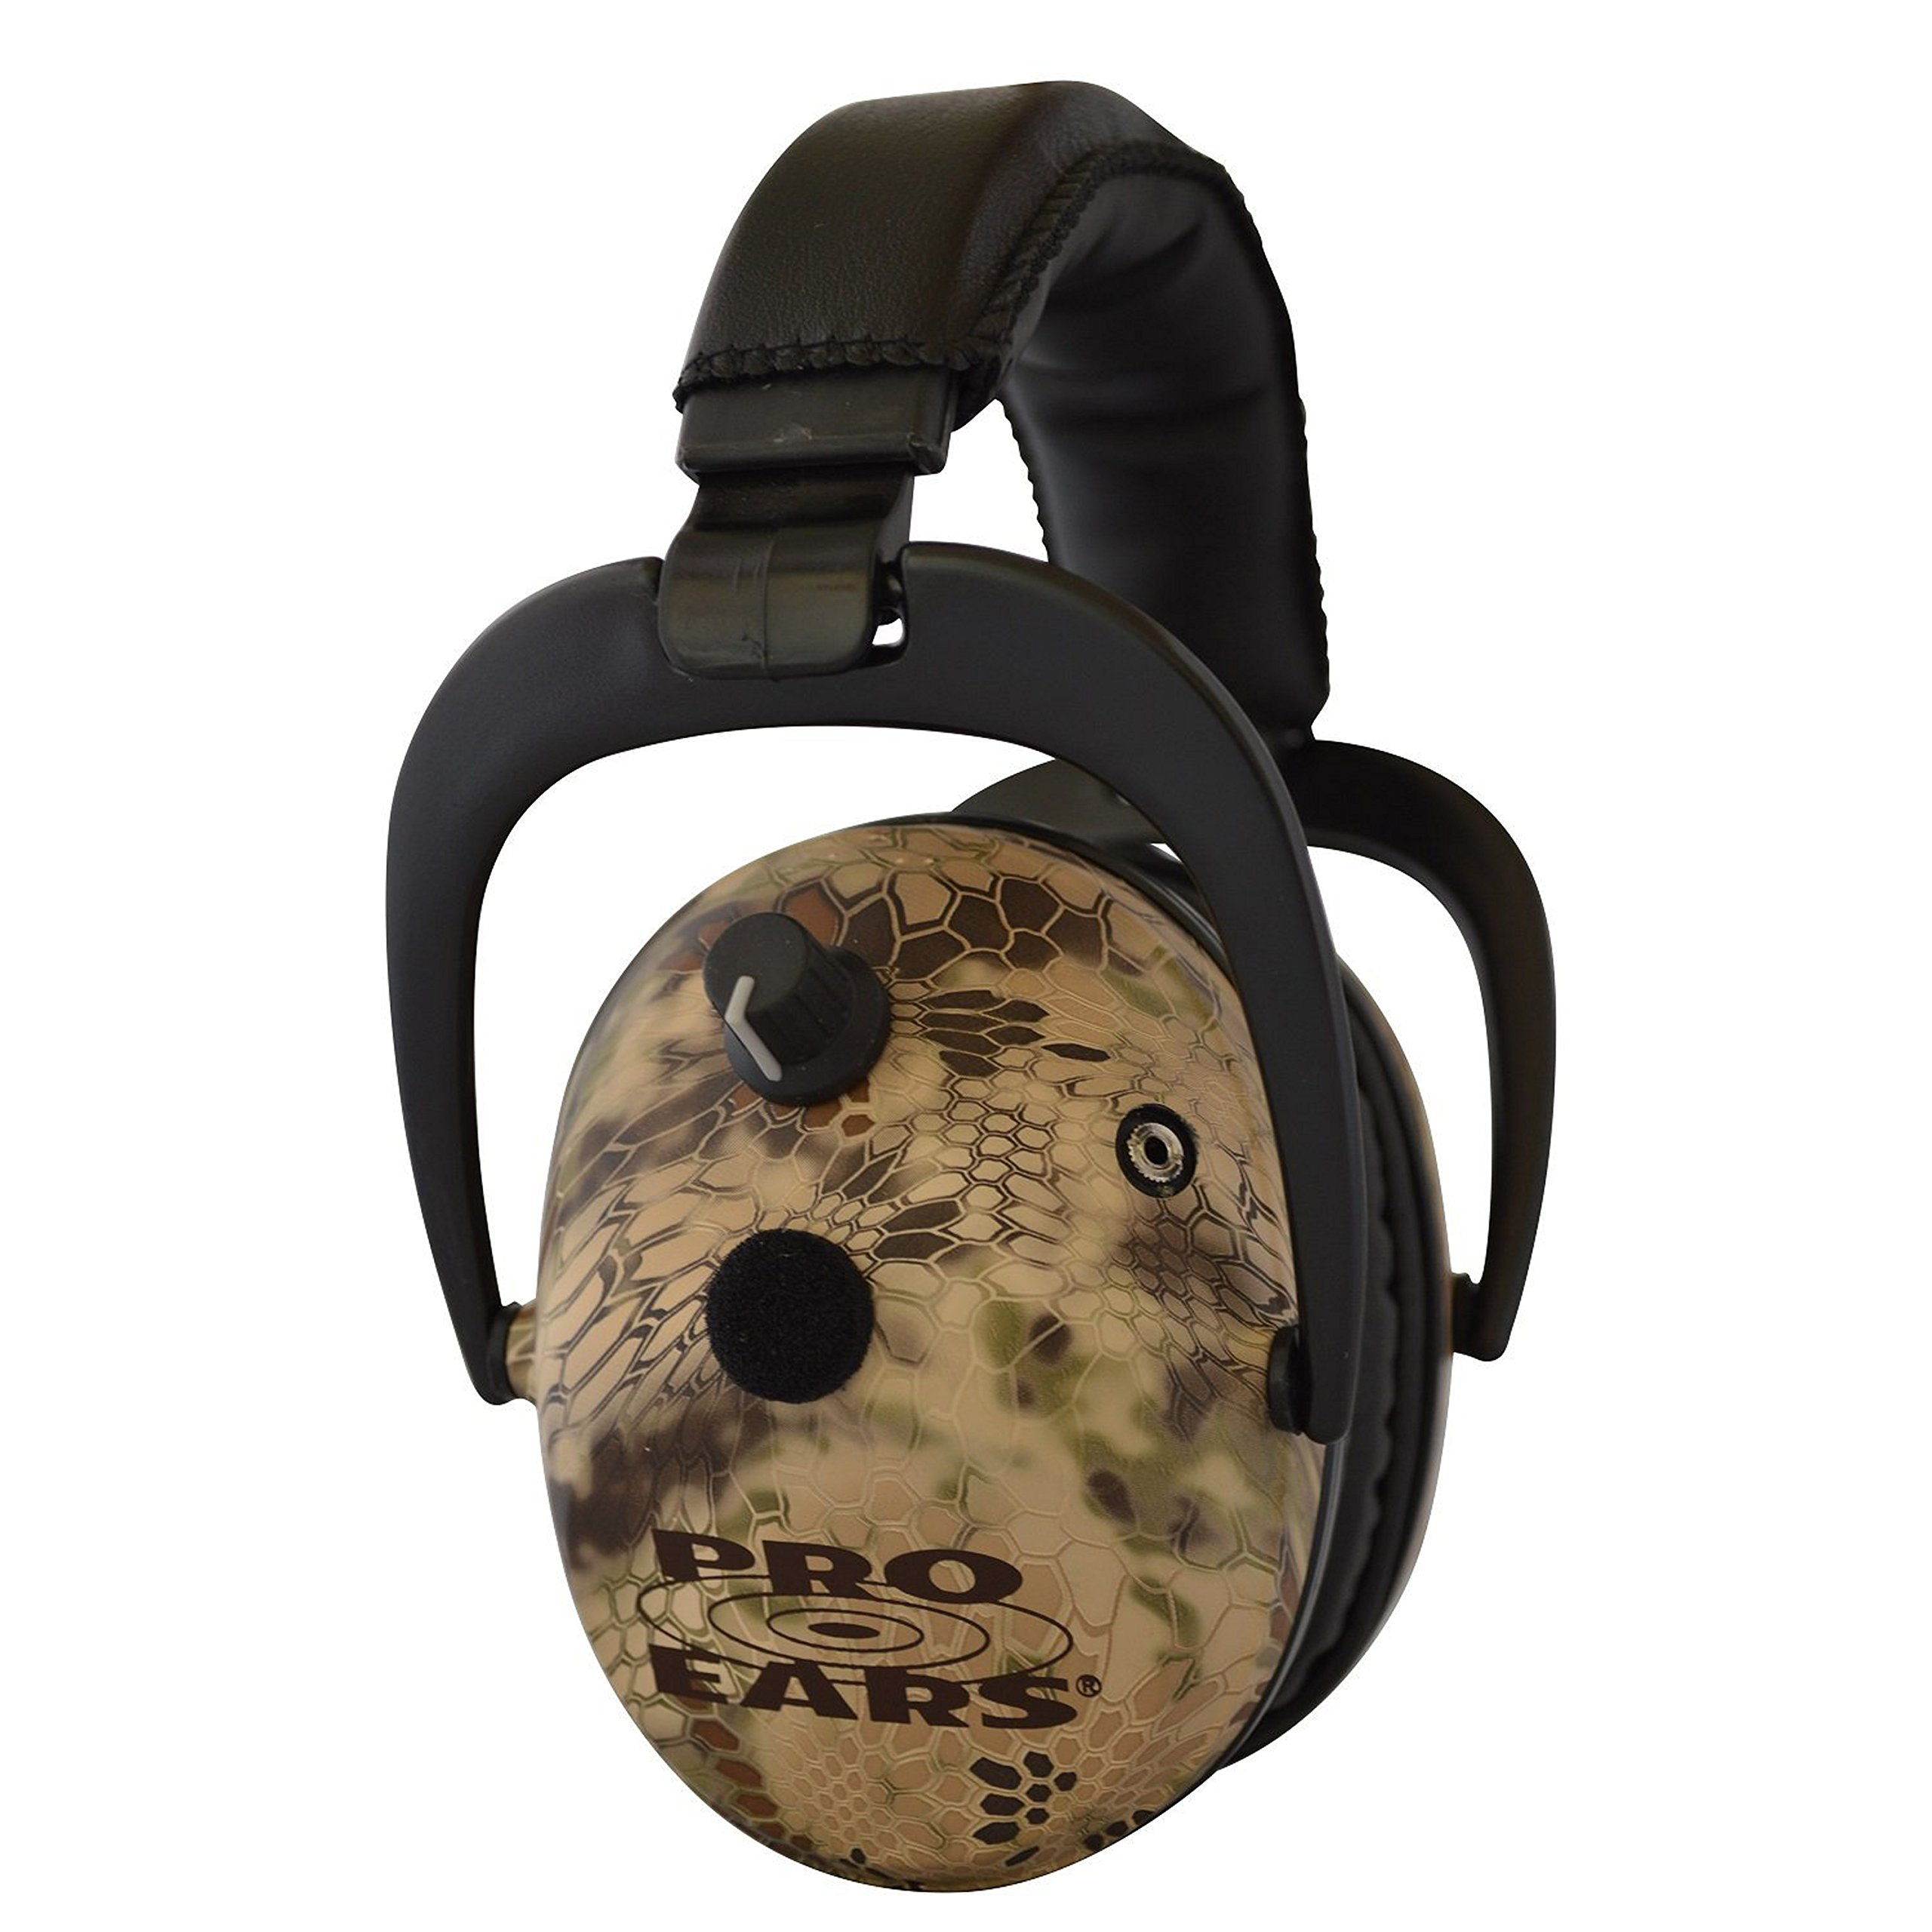 Pro Ears - Predator  Gold - Hearing Protection and Amplfication - NRR 26 - Contoured Ear Muffs - Highlander by Pro Ears